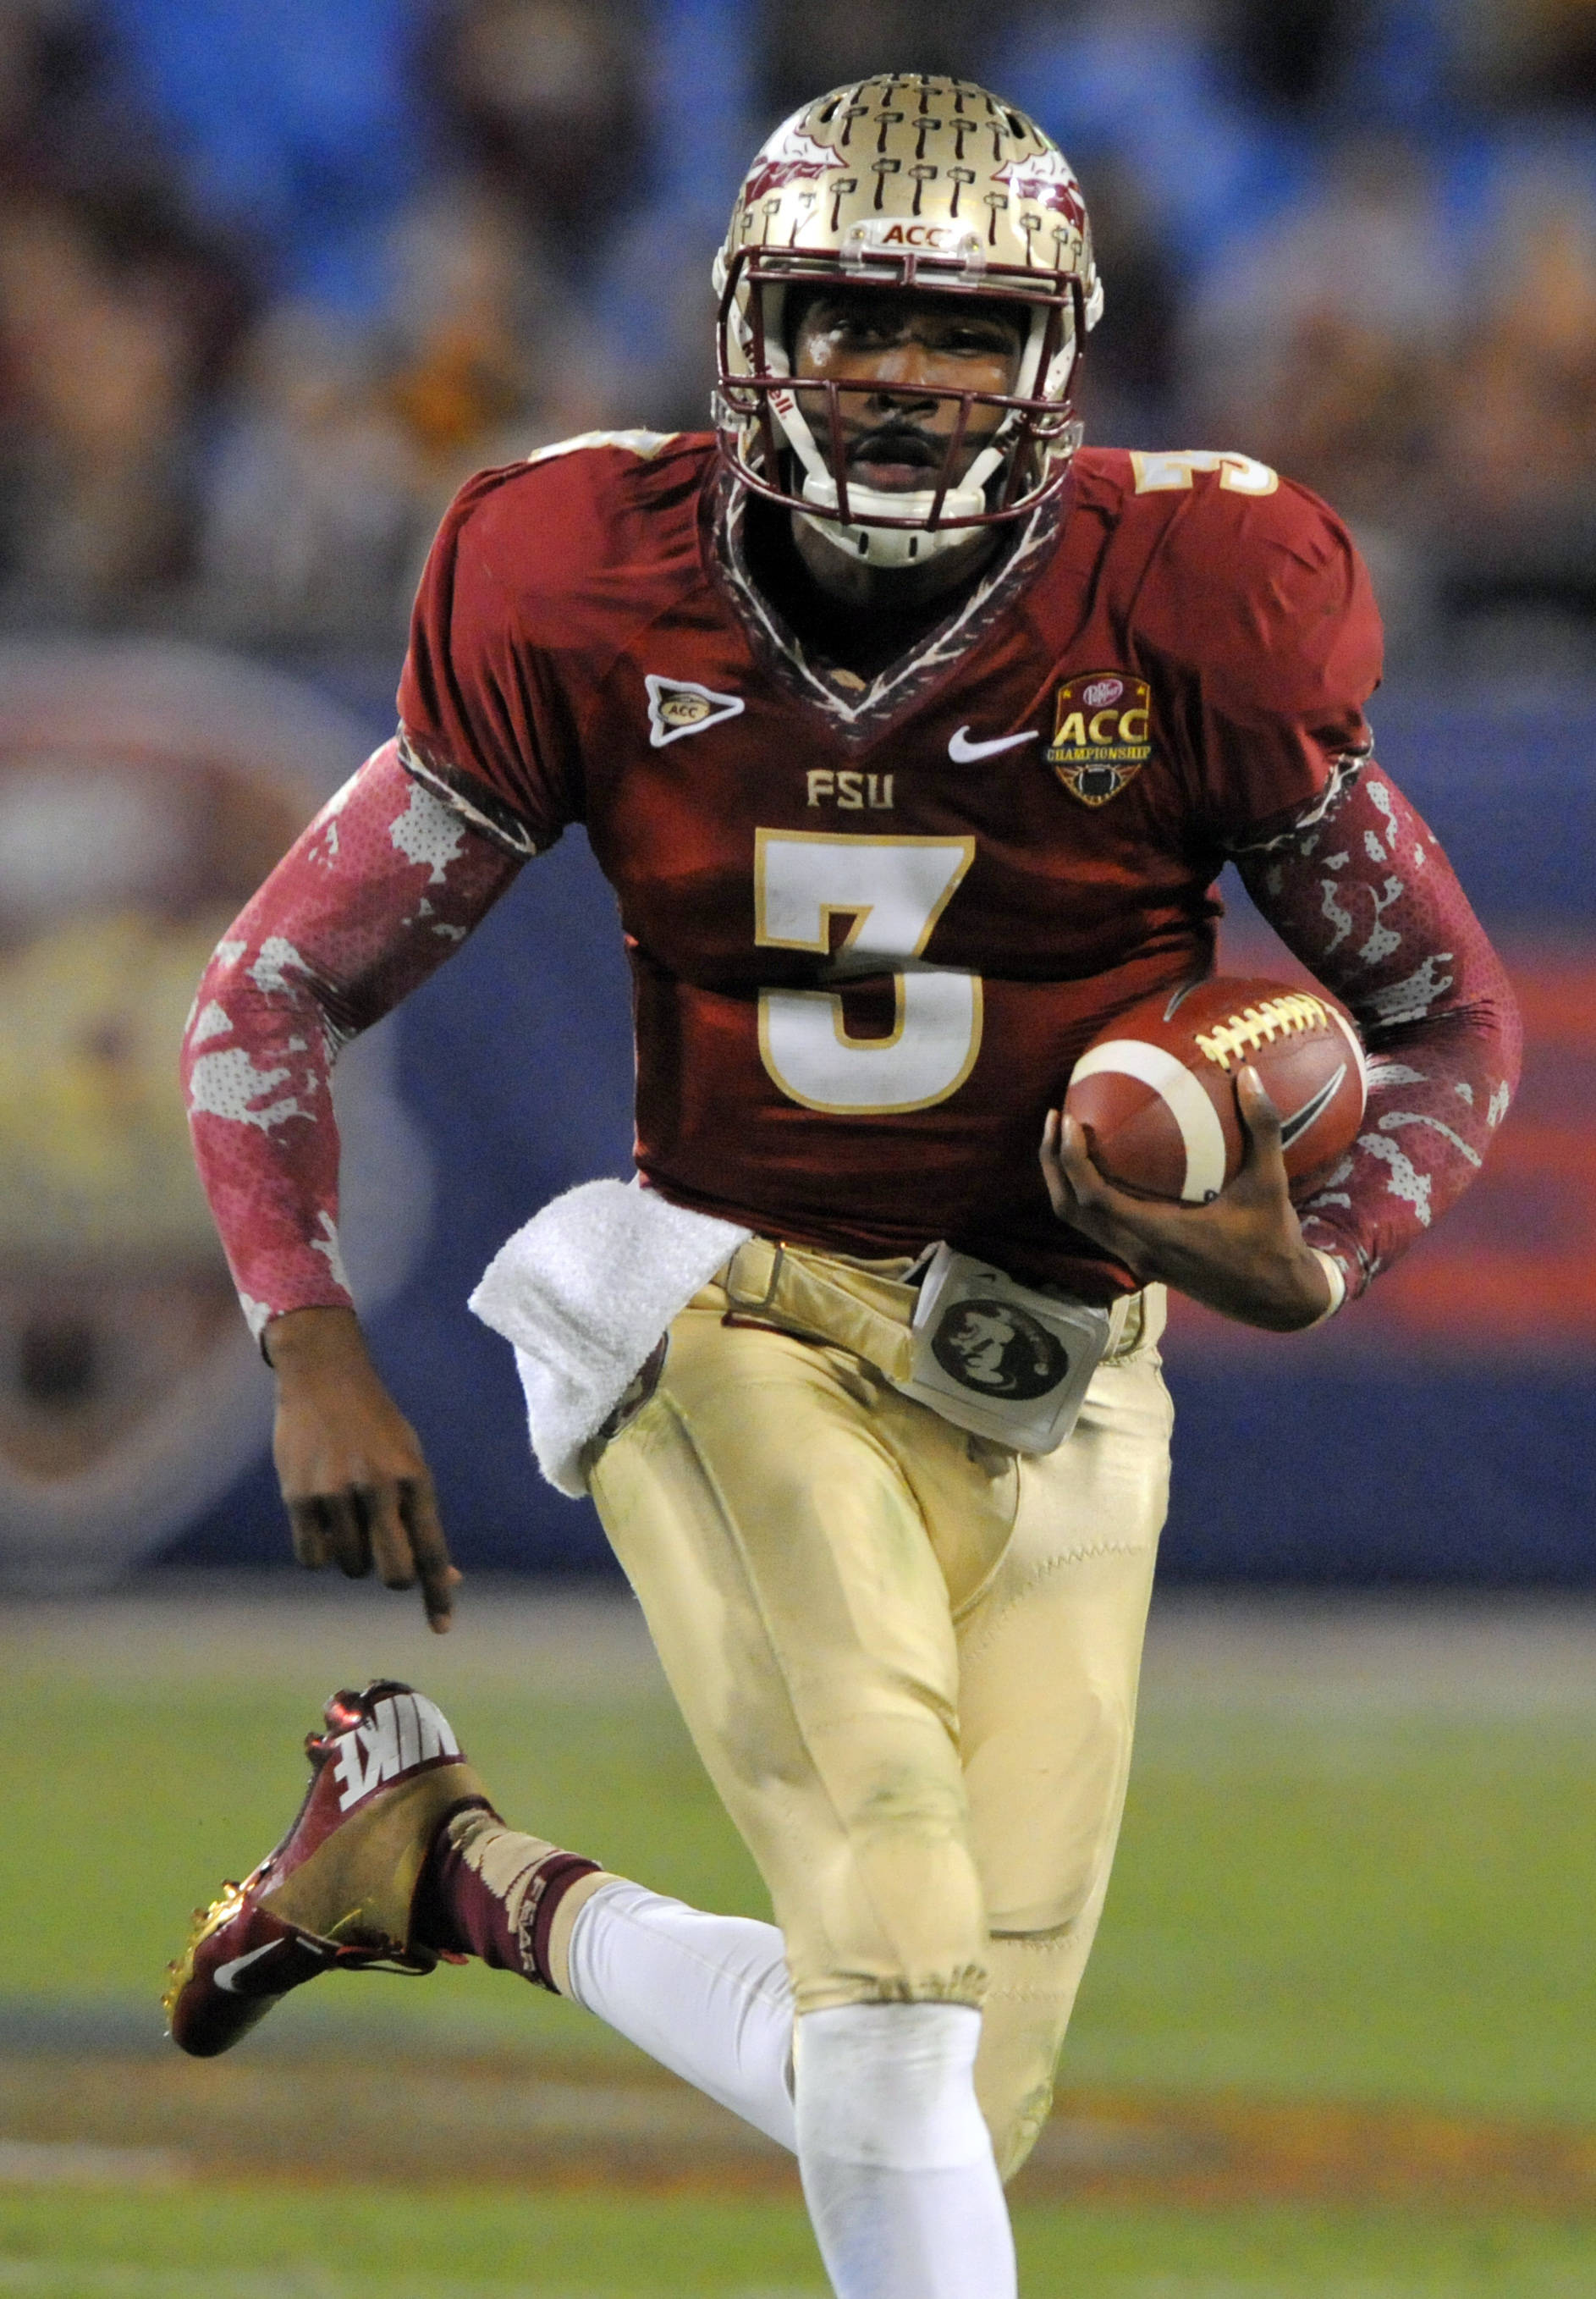 Florida State's EJ Manuel (3) scrambles for a long gain against Georgia Tech during the first half. (AP Photo/Mike McCarn)